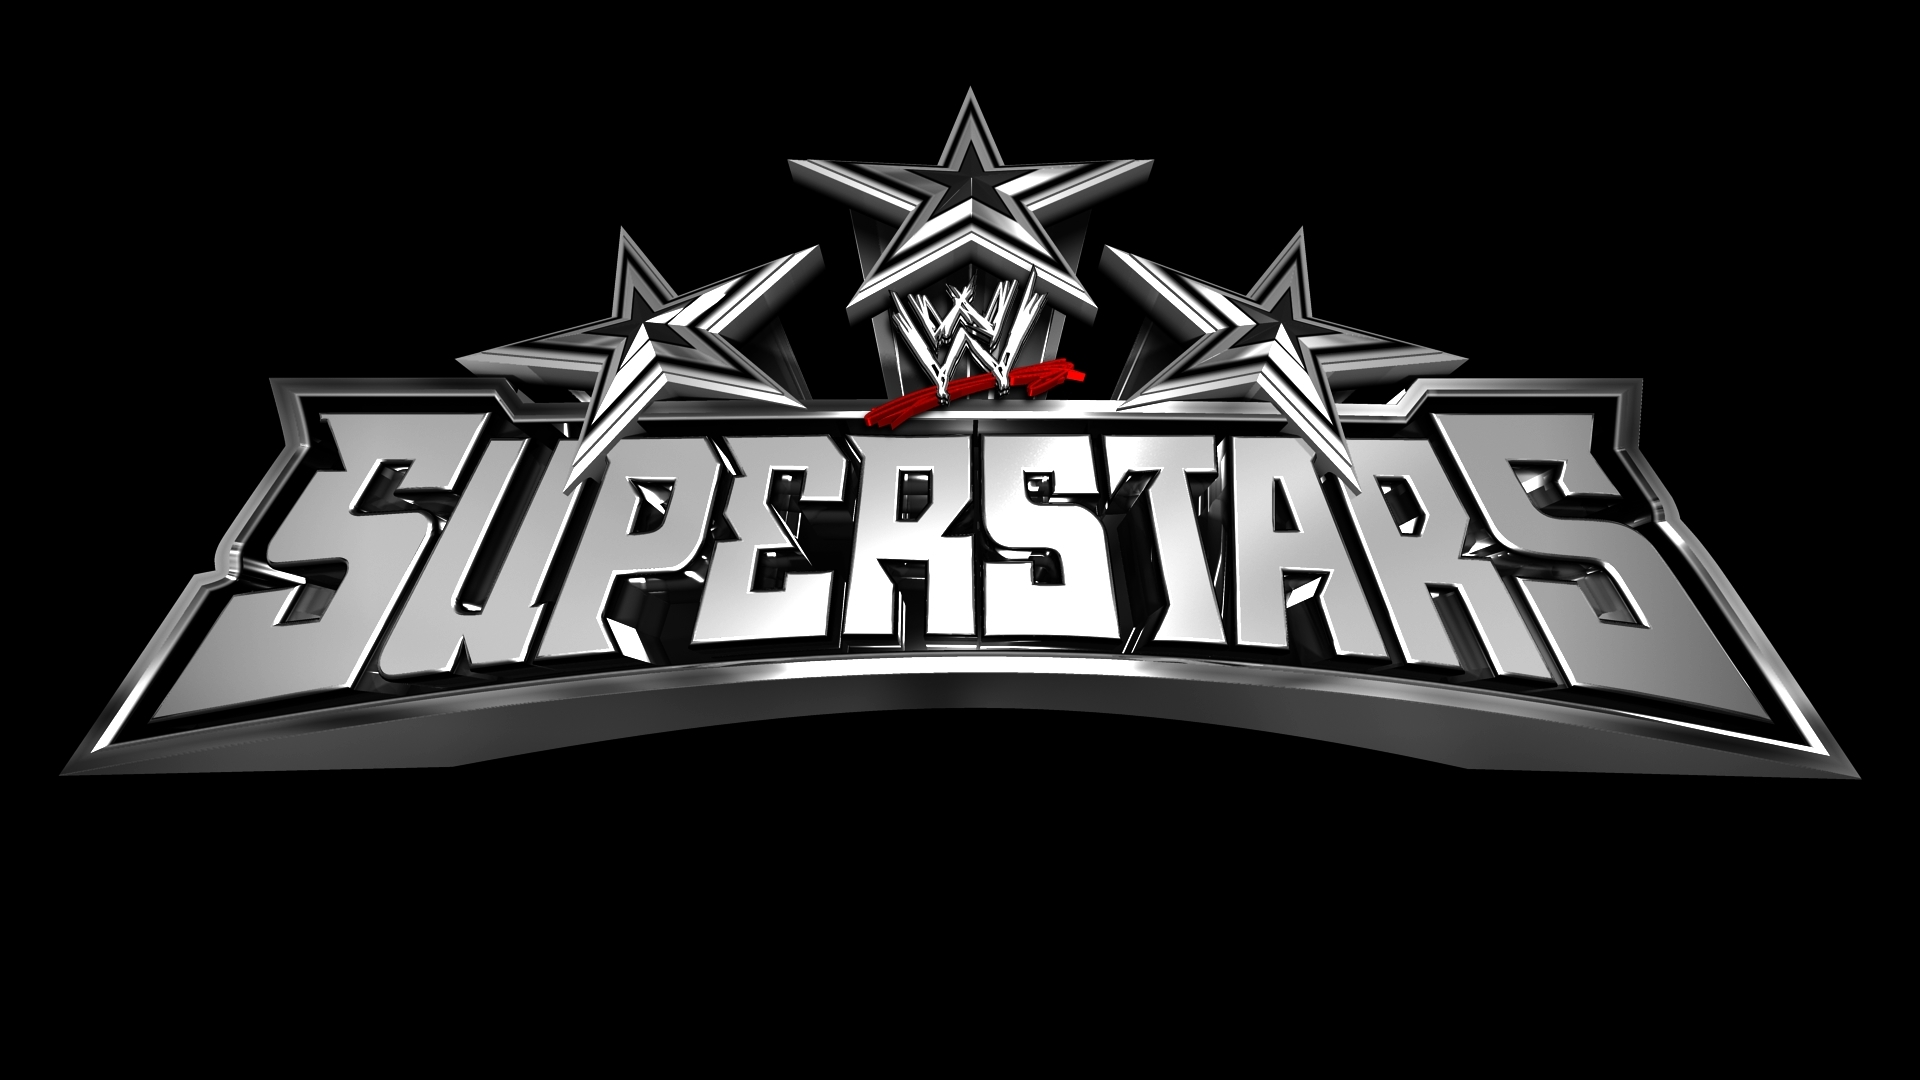 wwe superstars logo